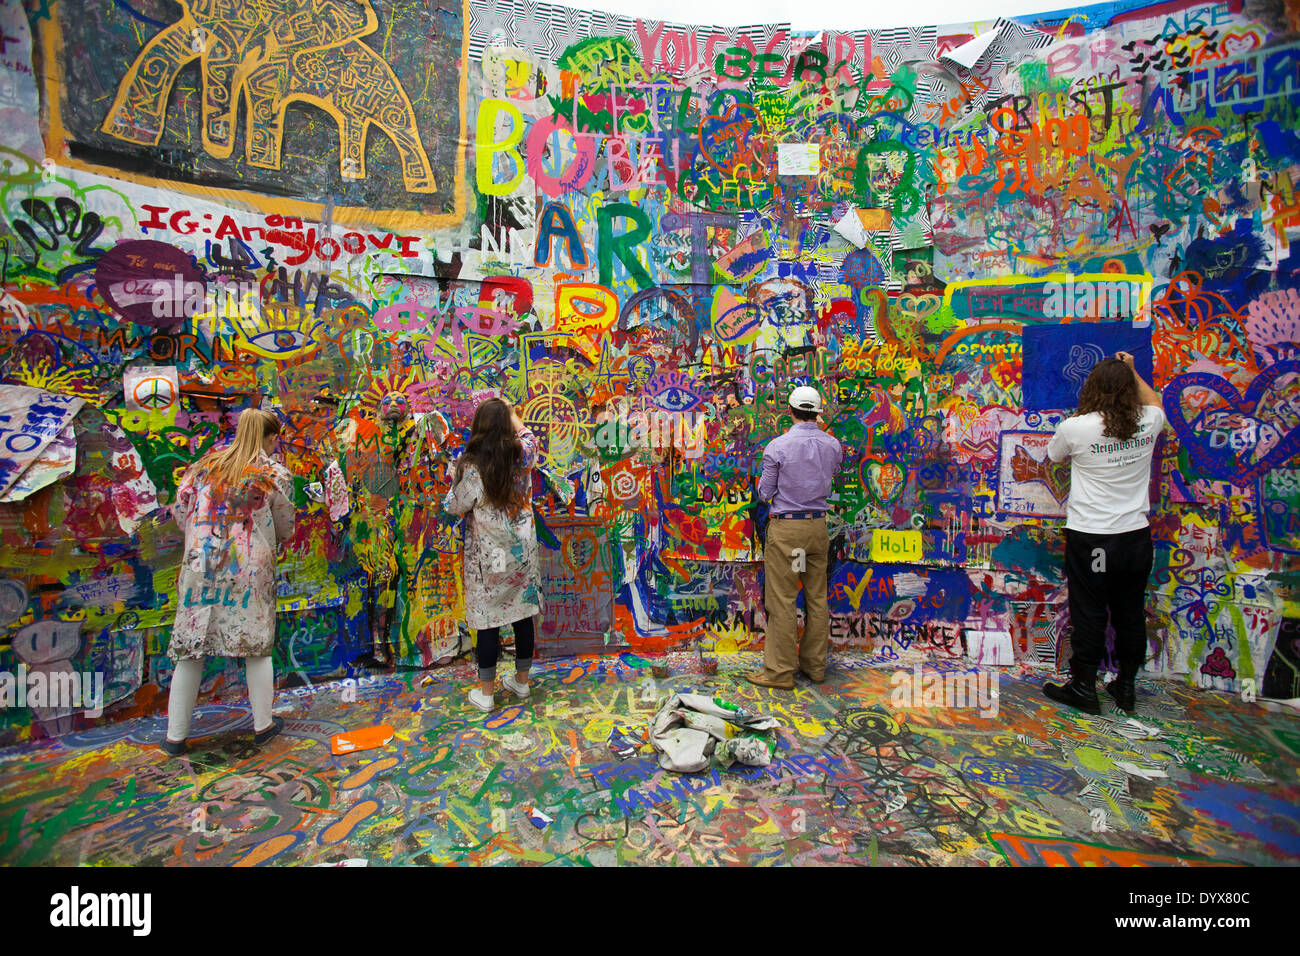 painting the walls at an exhibit, The New Museum, Manhattan, New York City, New York - Stock Image